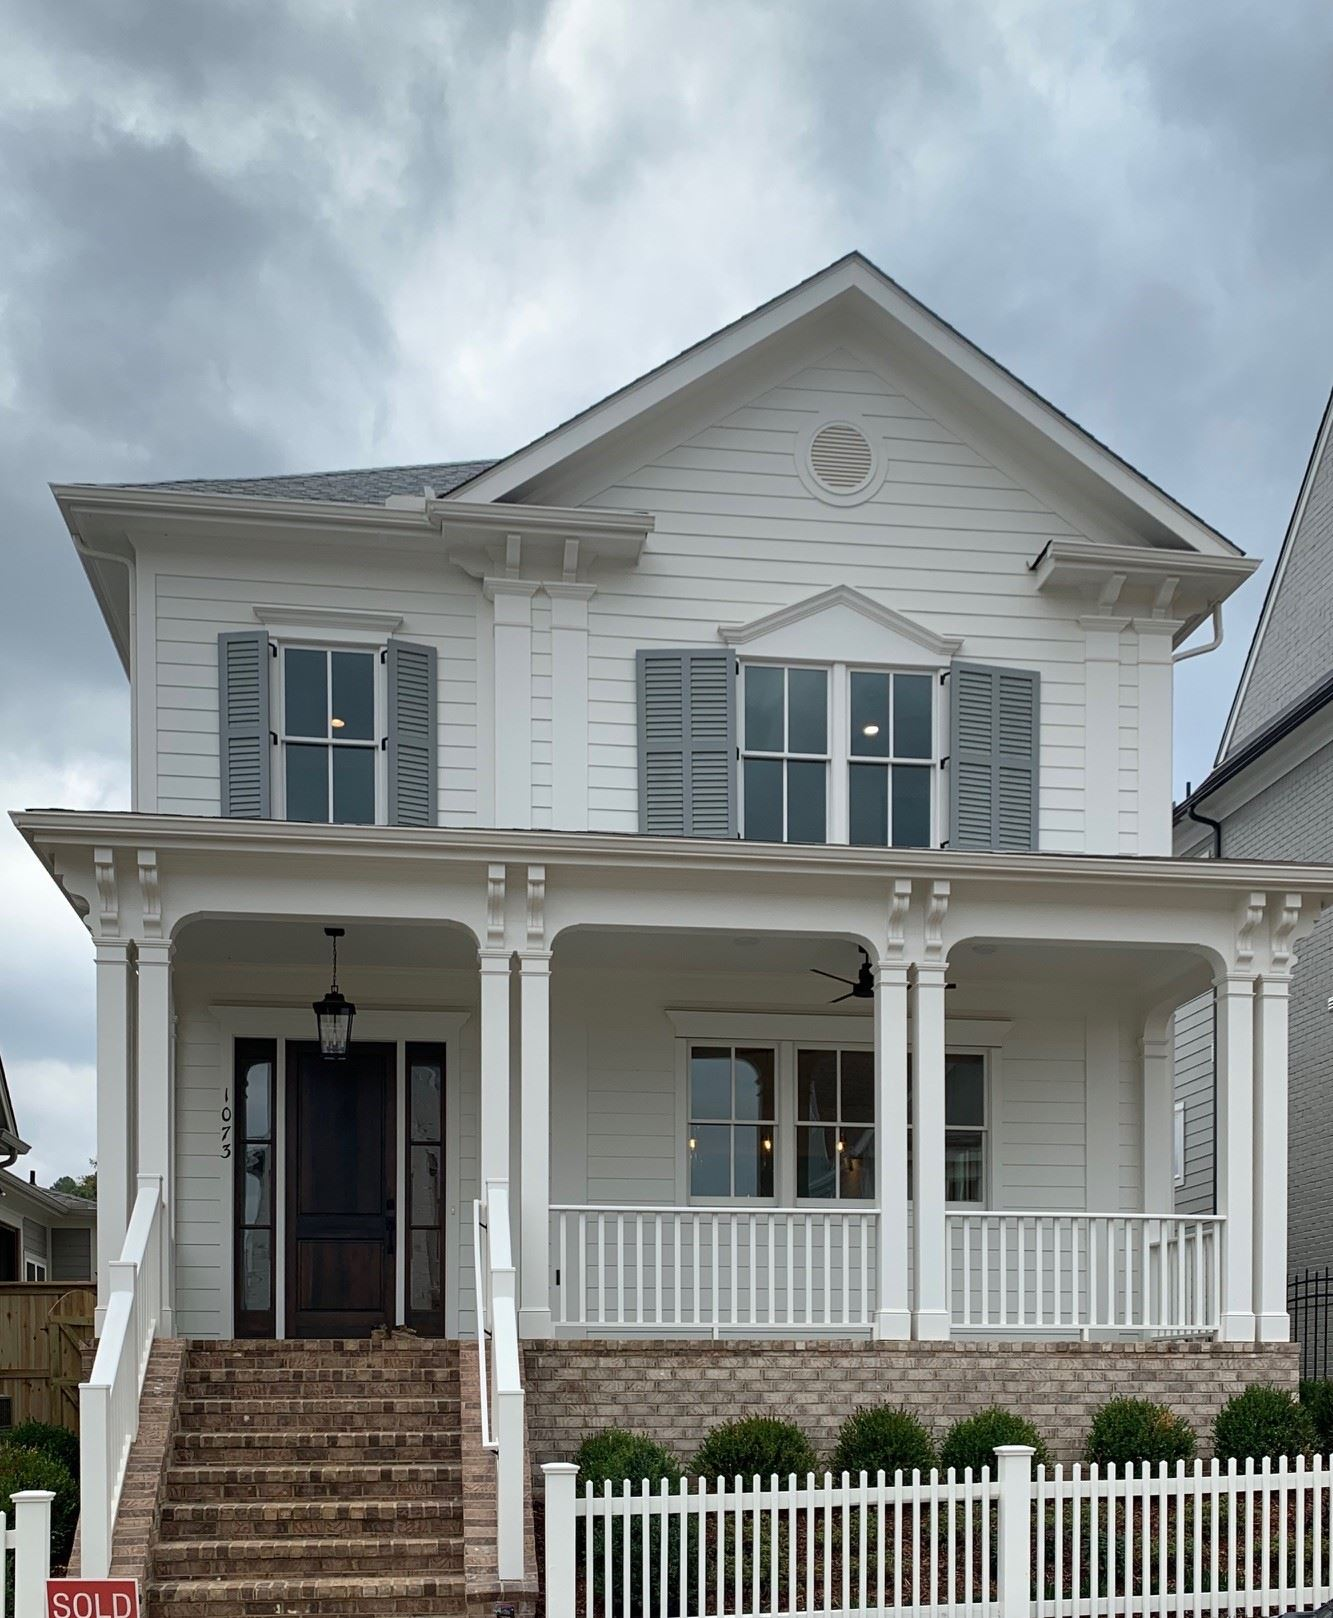 Photo of 1073 Calico Street, WH # 2116, Franklin, TN 37064 (MLS # 2139782)